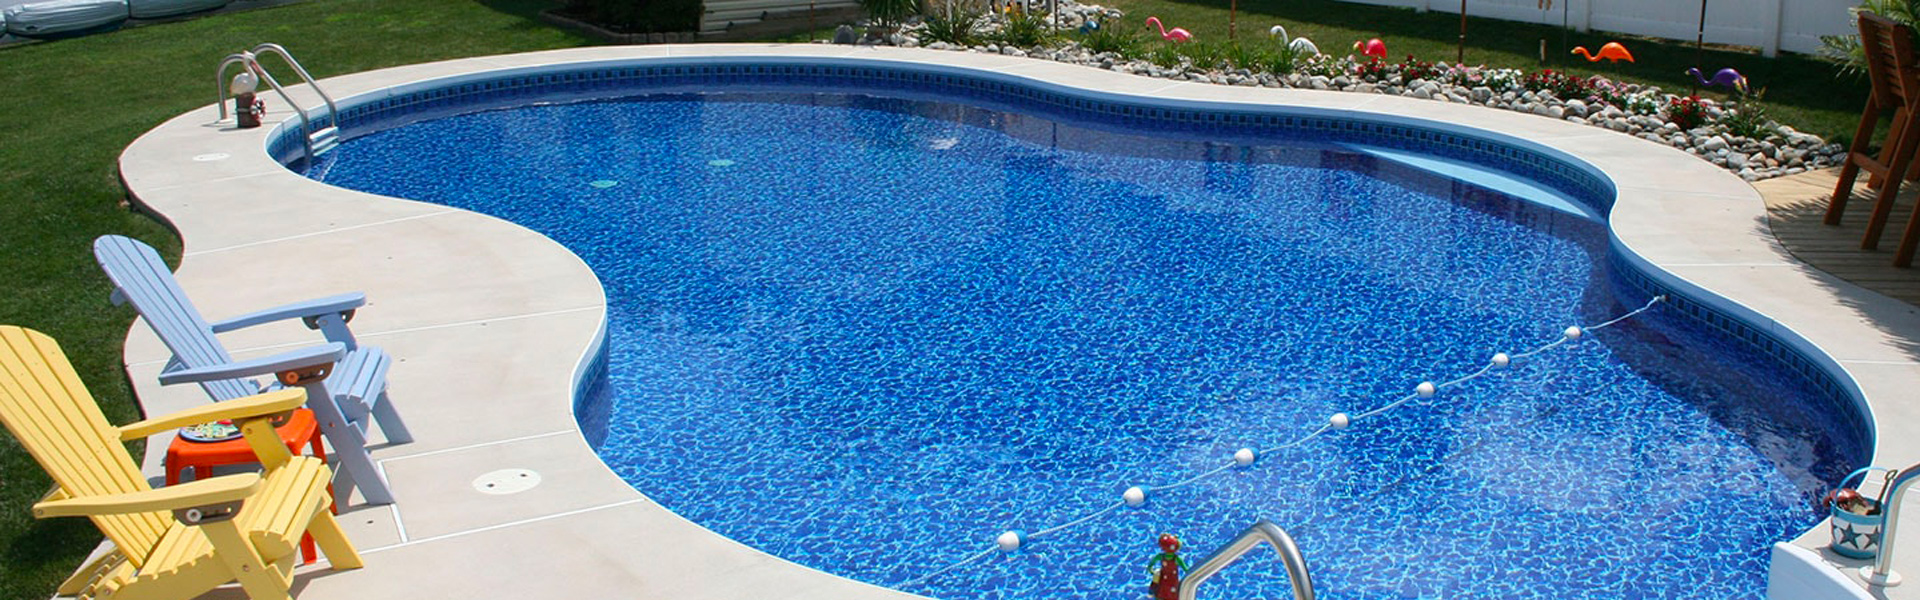 Why You Should Hire a Professional Pool Cleaning Service